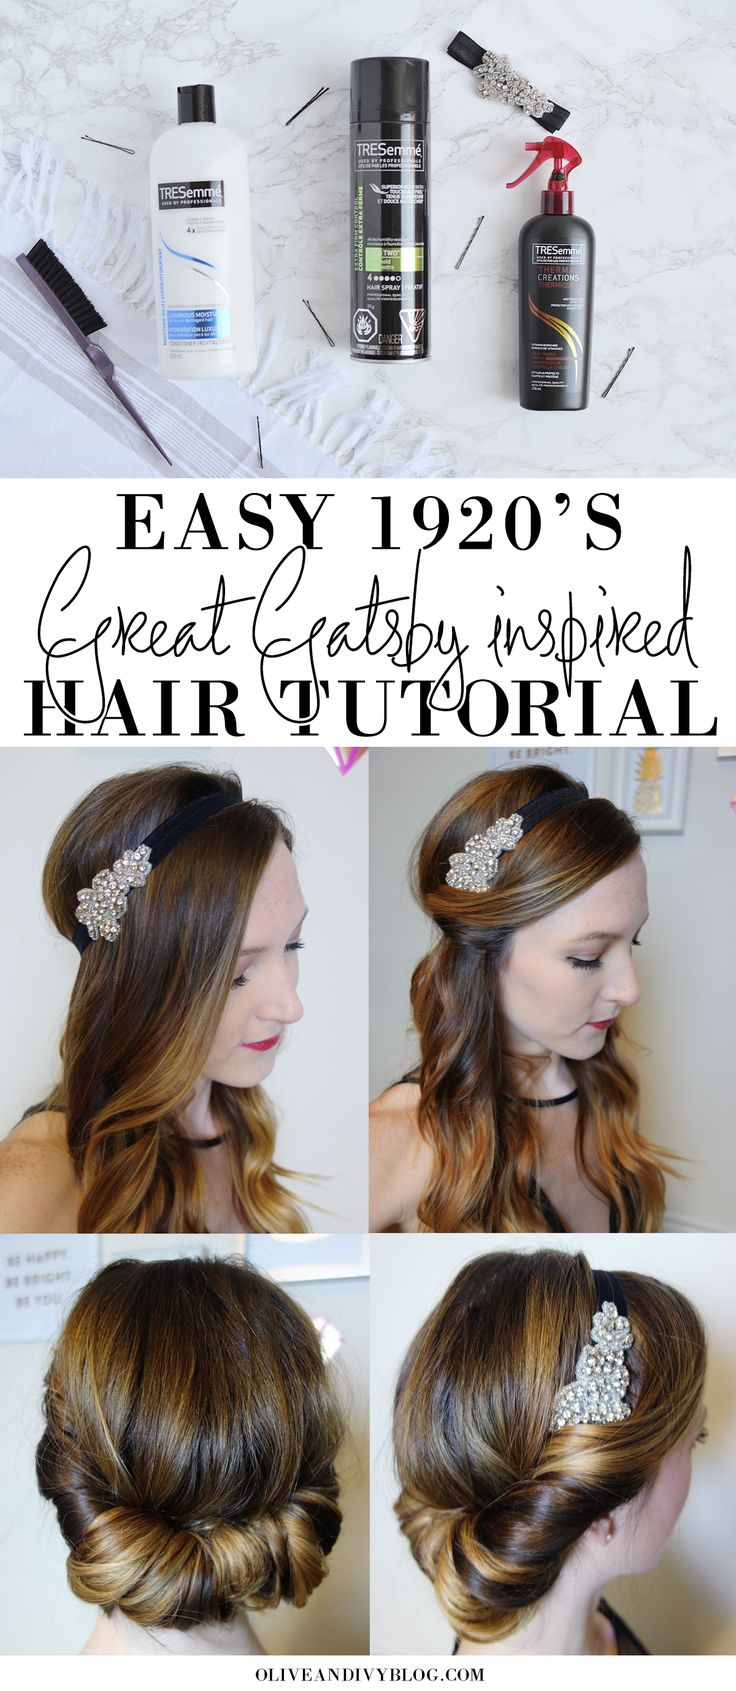 Easy 1920's Great Gatsby hair tutorial AD | oliveandivyblog.com                                                                                                                                                                                 More